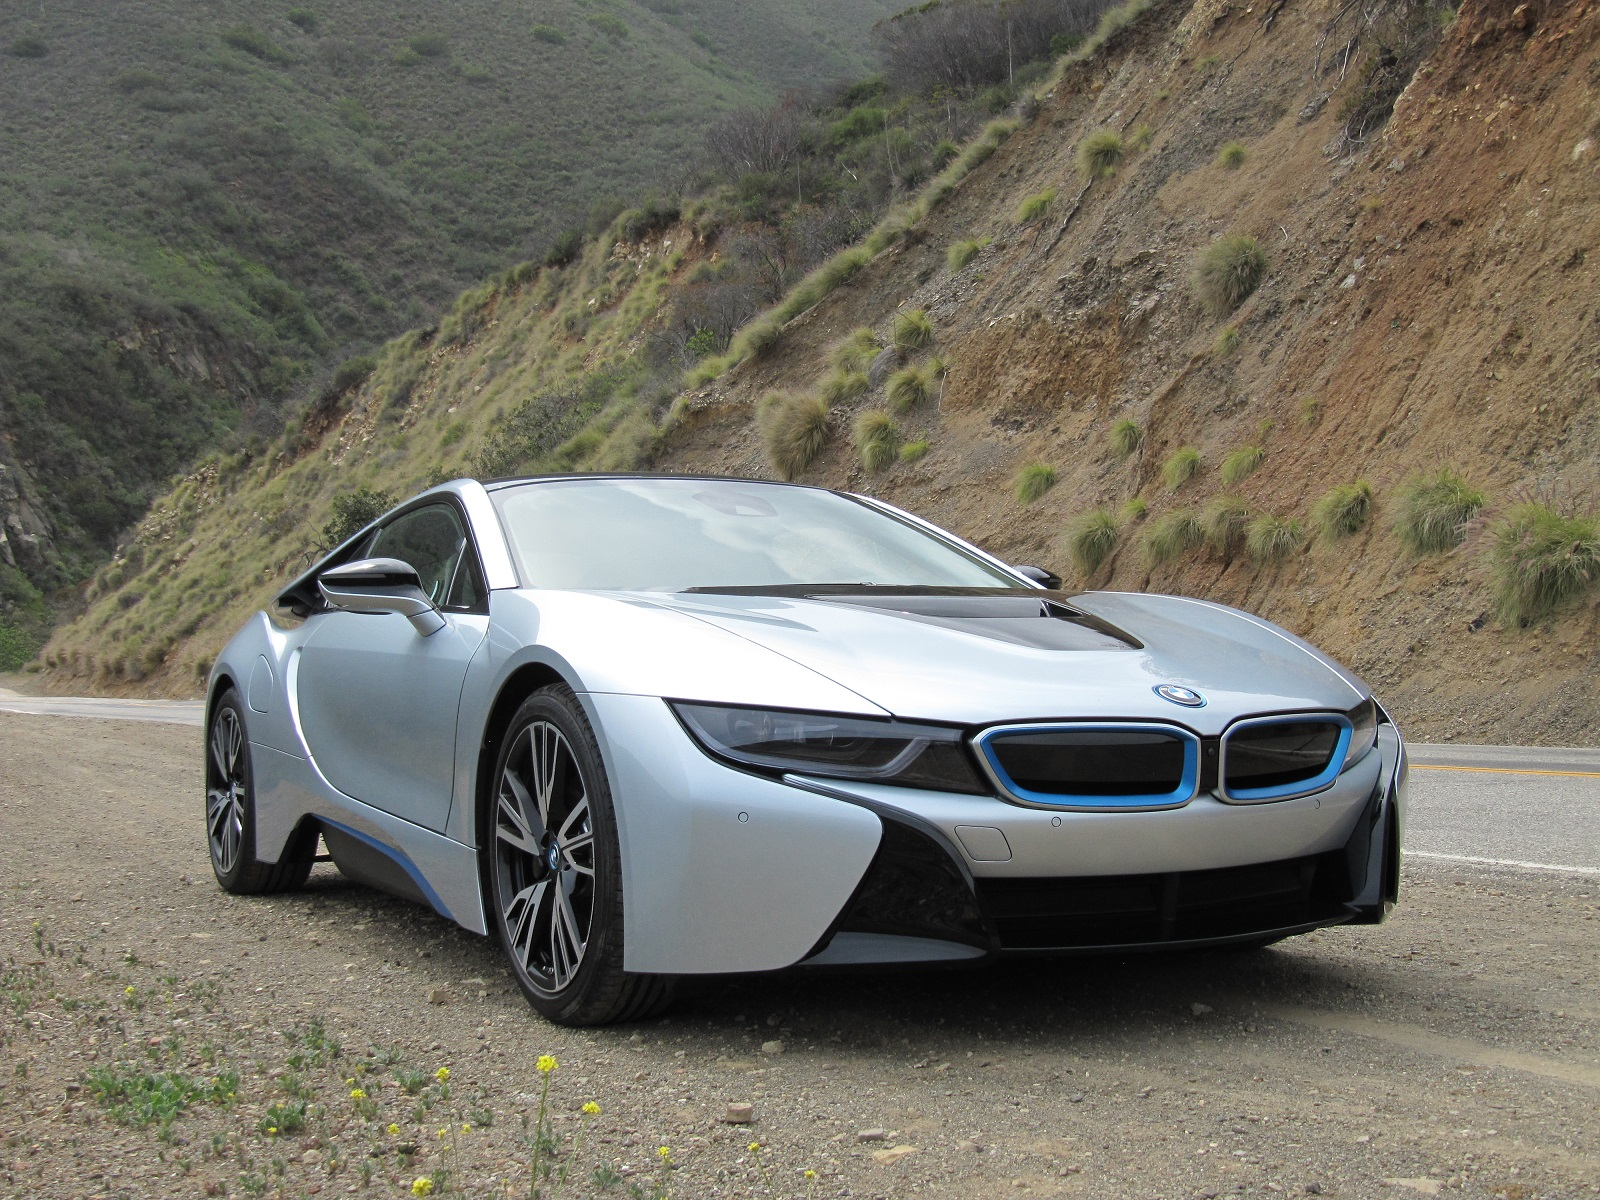 bmw i8 plug in hybrid sports car full pricing and options announced. Black Bedroom Furniture Sets. Home Design Ideas